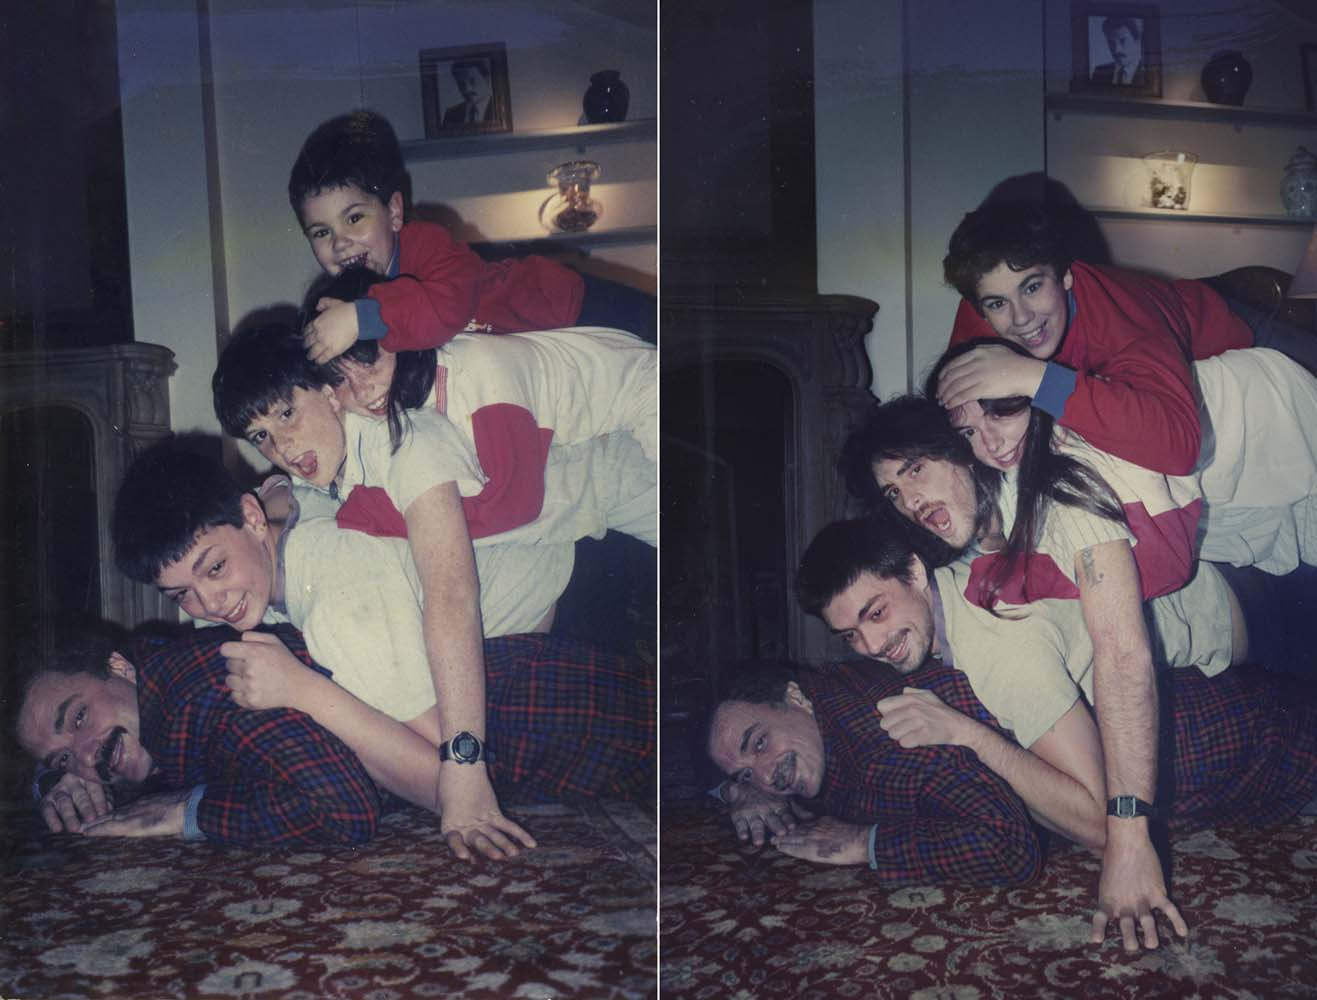 Zurbano Family from the series Back to the Future